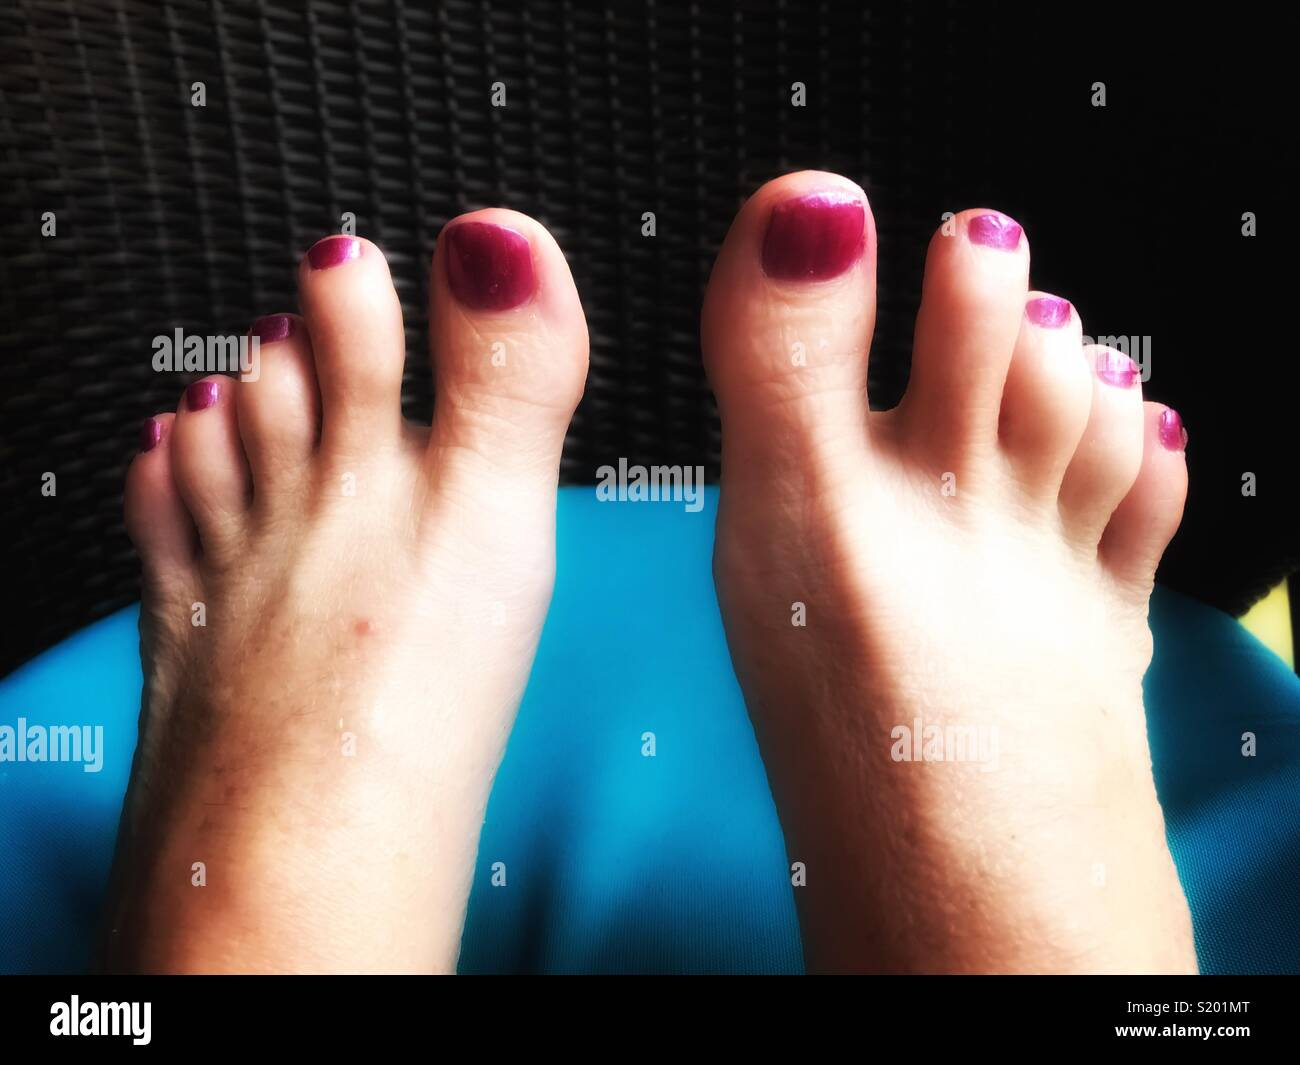 Bali holiday feet, wrinkles and painted nails - Stock Image